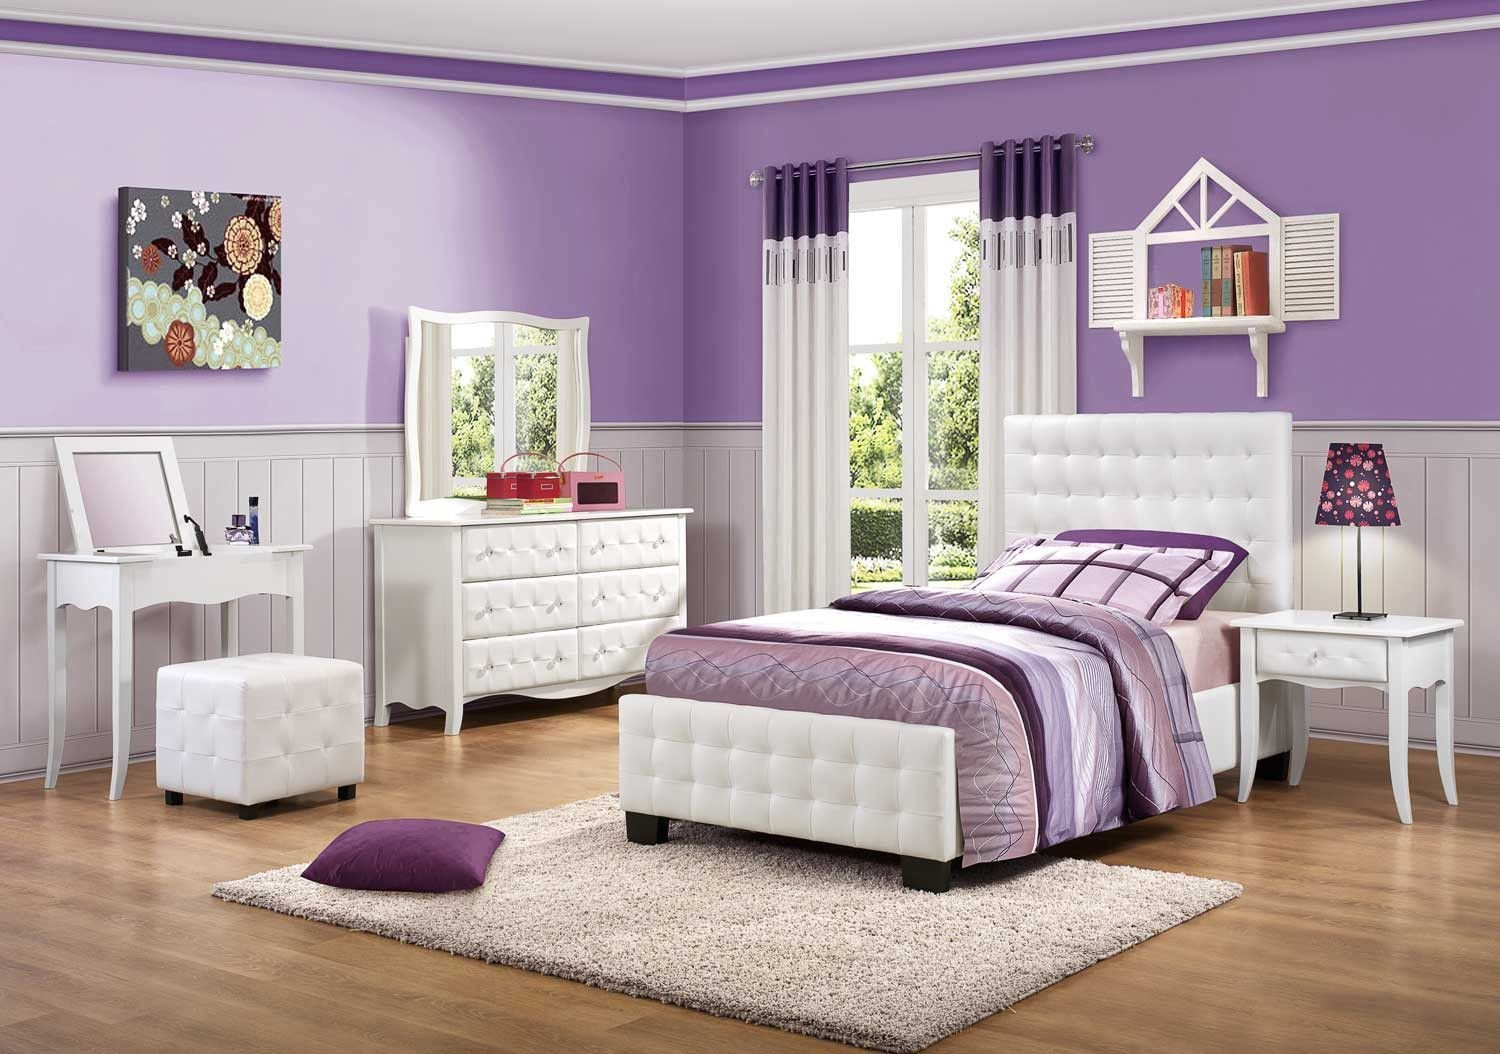 Girls Full Size Bedroom Set Inspirational Sparkle Bedroom